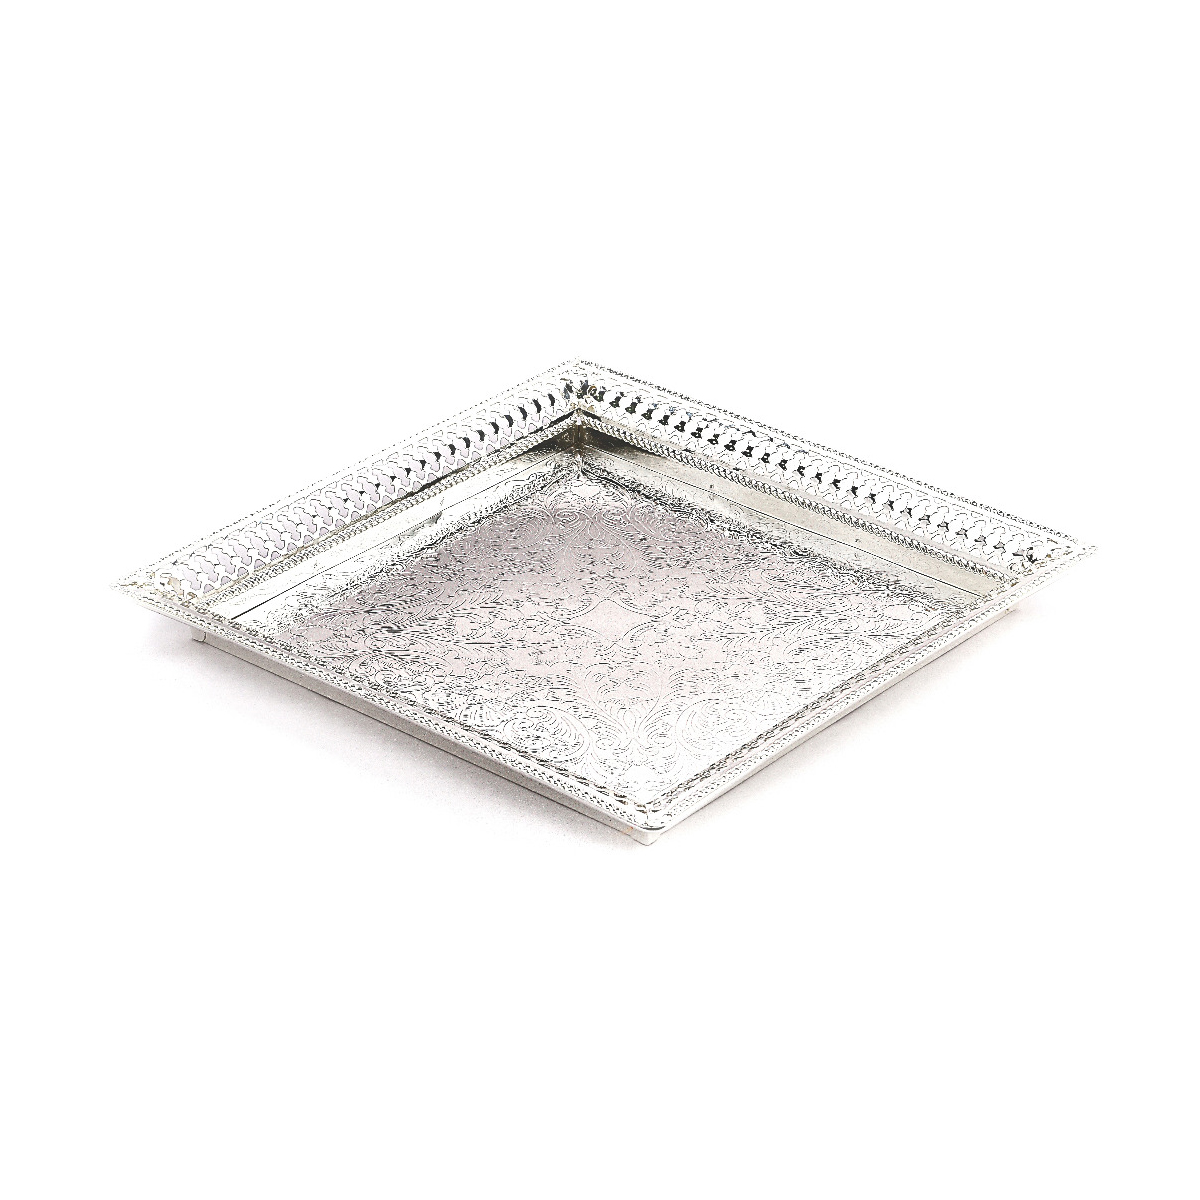 Square Silver Plated Centerpiece   11.2×11.2″